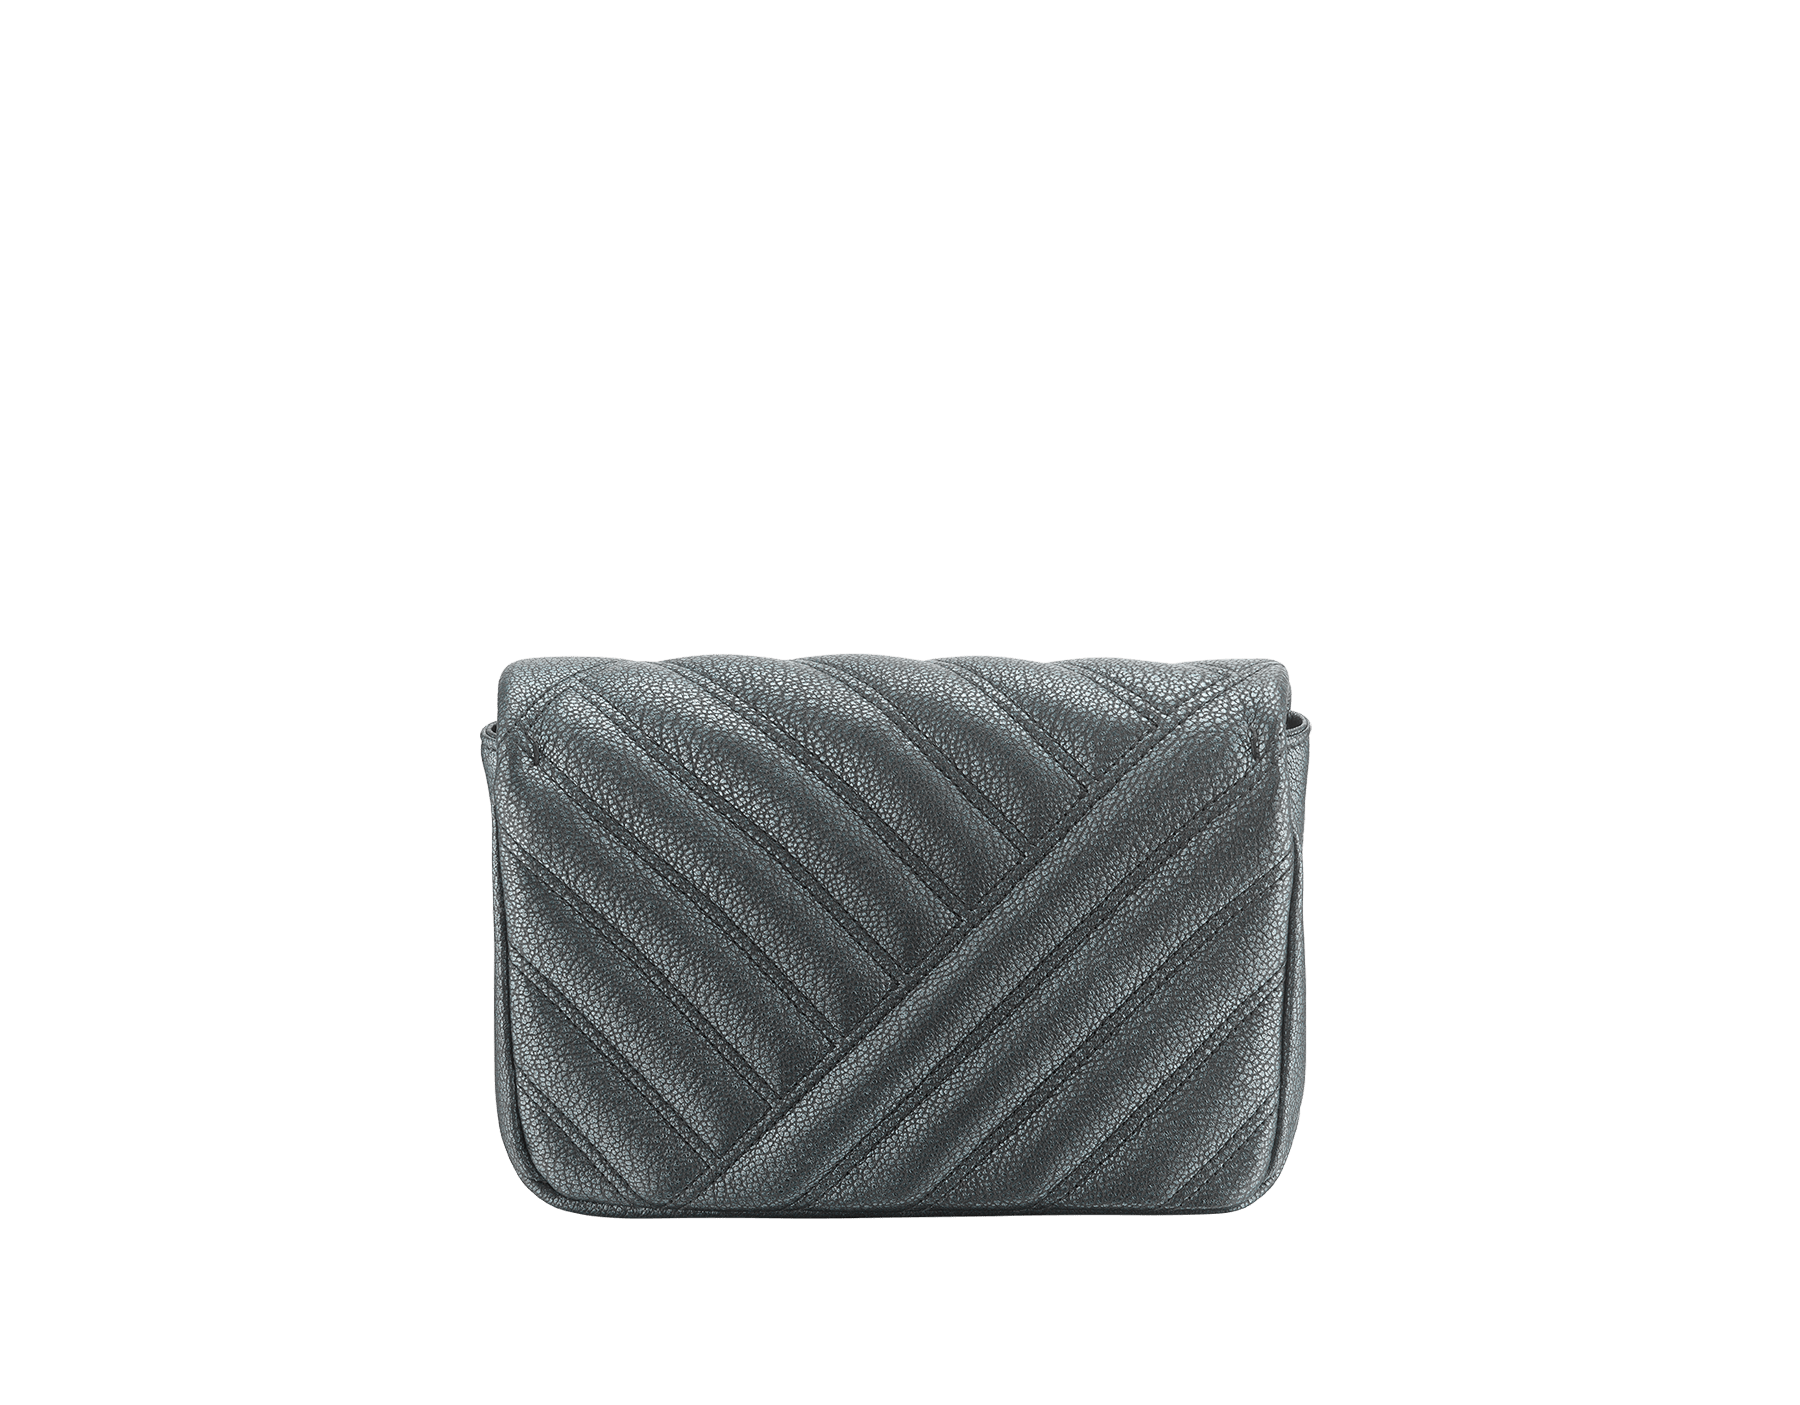 """Serpenti Cabochon"" crossbody mini bag in soft matelassé charcoal diamond goatskin with a pearled effect and a graphic motif. Brass palladium plated tempting snakehead closure in matte and shiny black enamel and black onyx eyes. 290276 image 3"